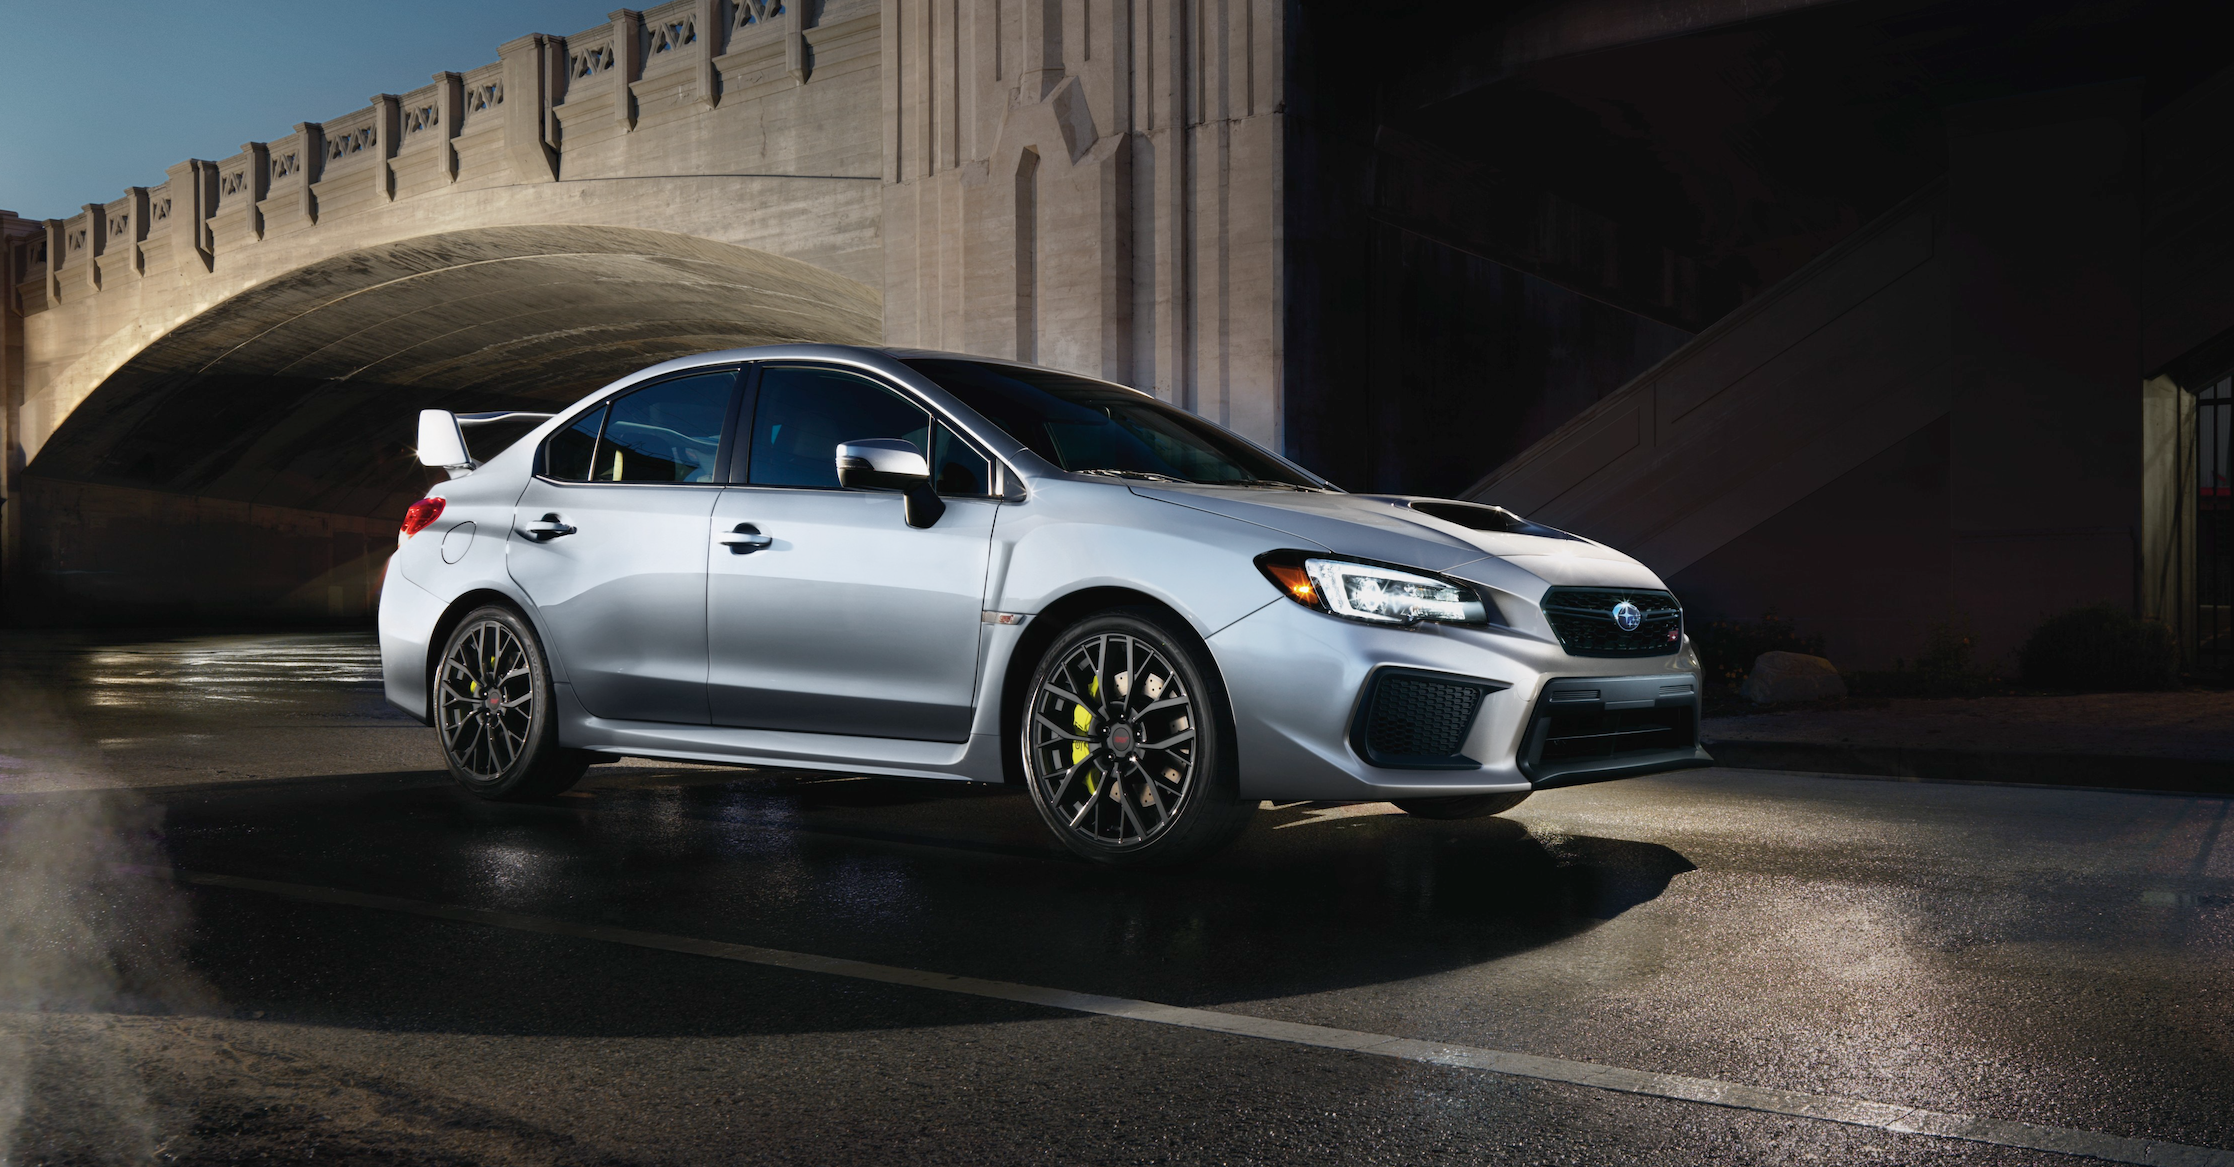 88 All New The 2019 Subaru Wrx Quarter Mile Price And Review Research New for The 2019 Subaru Wrx Quarter Mile Price And Review